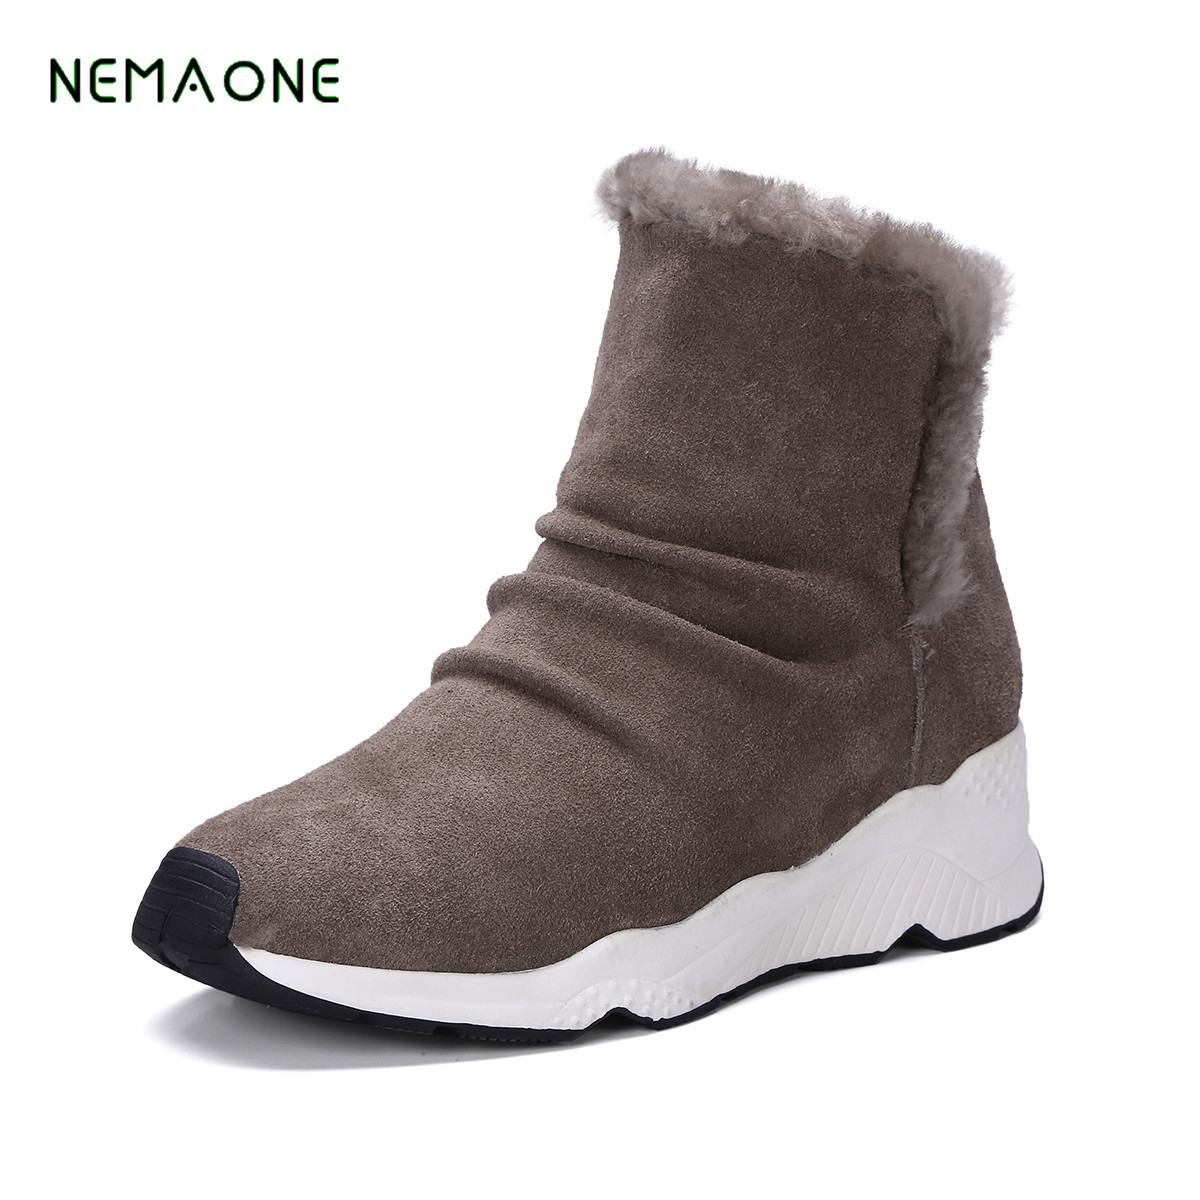 NEMAONE Mordern Women Winter Boots Genuine Leather Ankle Snow Boots Female Warm Fur Plush Insole High Quality Women Shoes